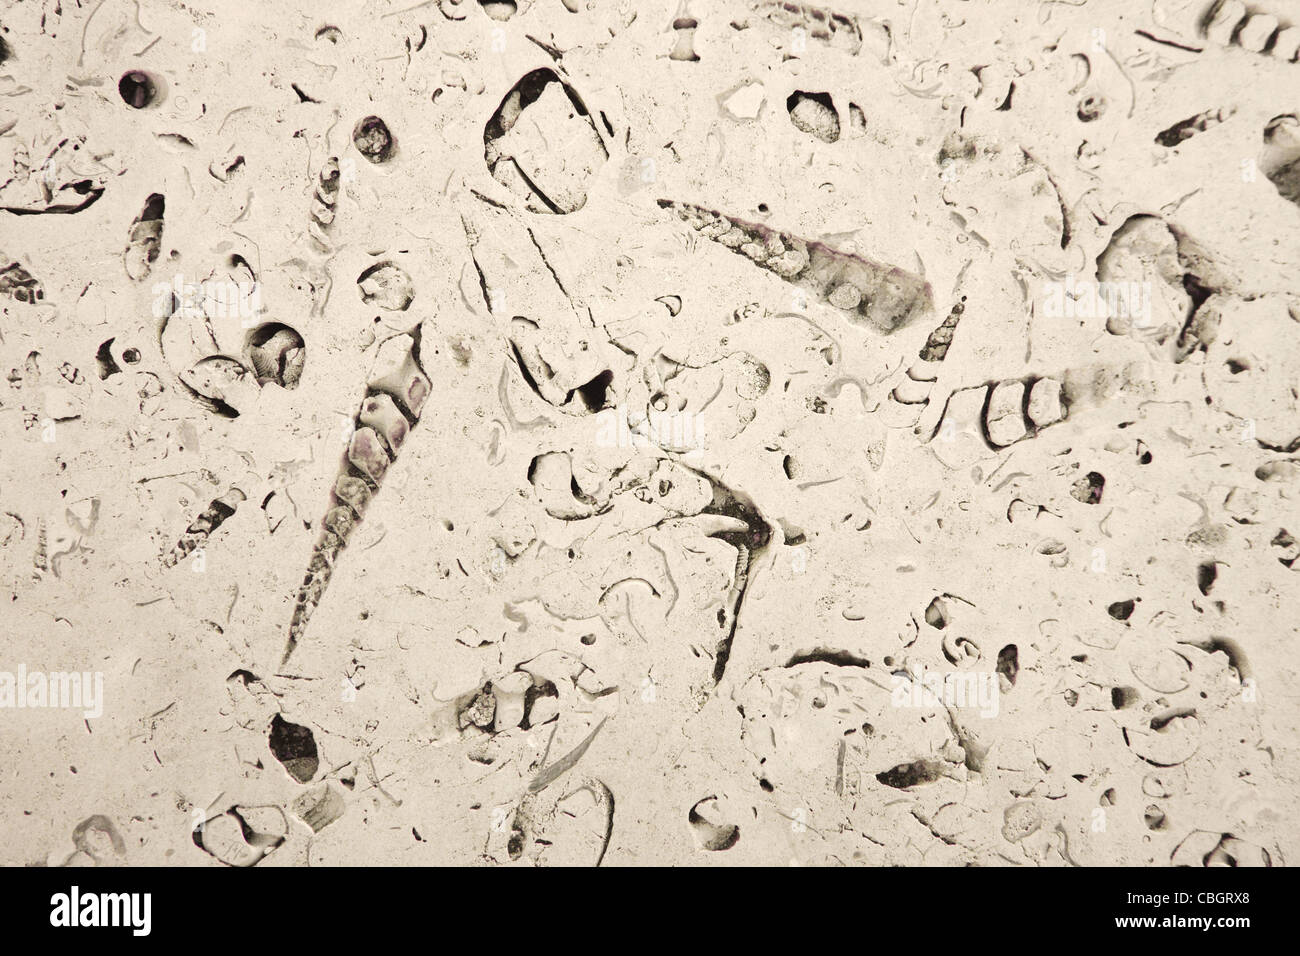 Portland roach stone polished to reveal a rich fossil content of gastropods and bivalves from the Jurassic era - Stock Image